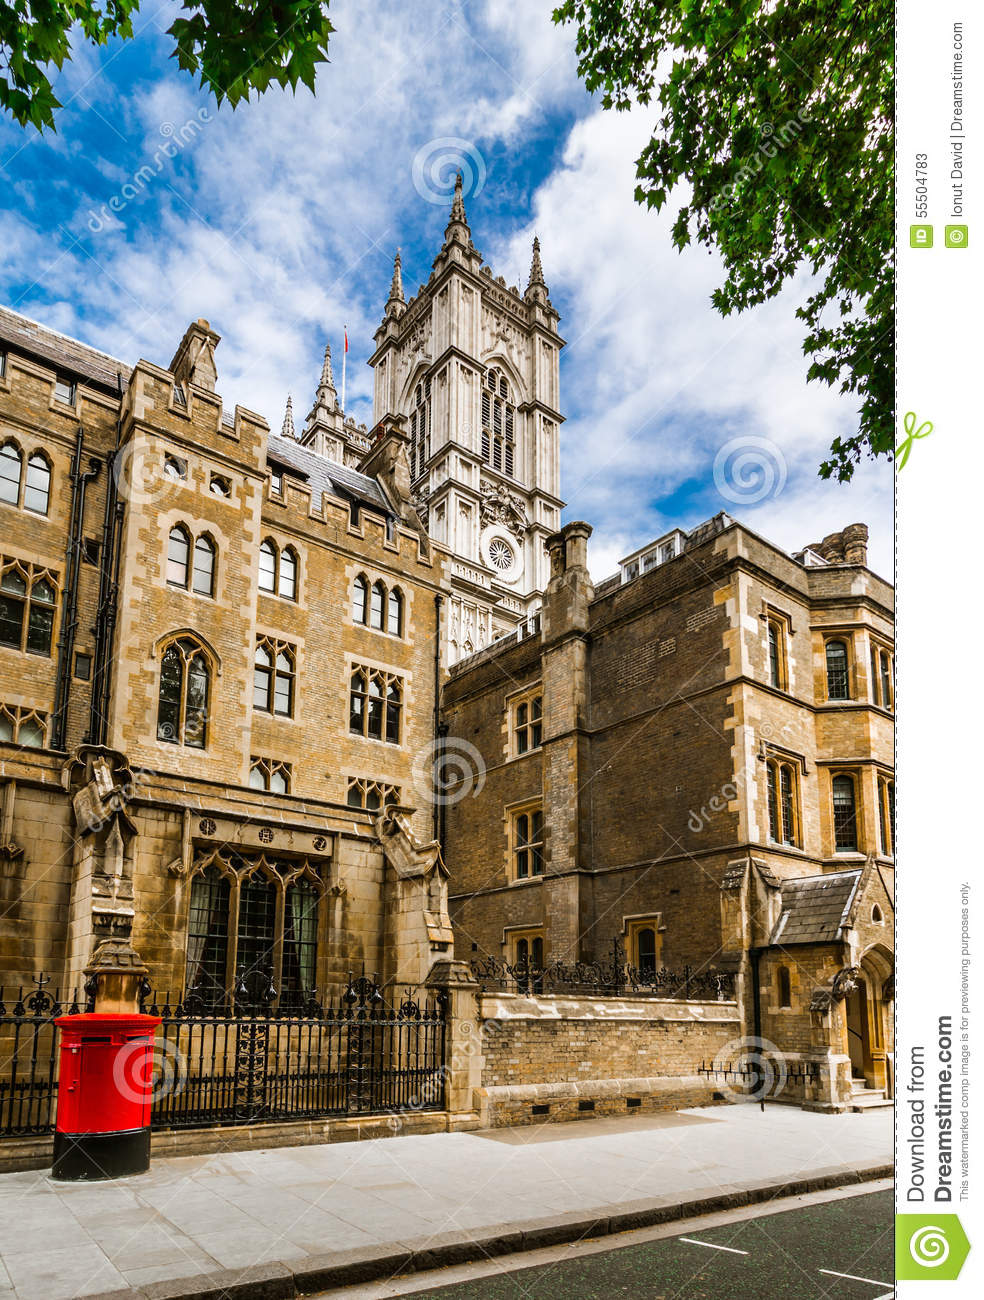 Westminster abbey: back street view, London